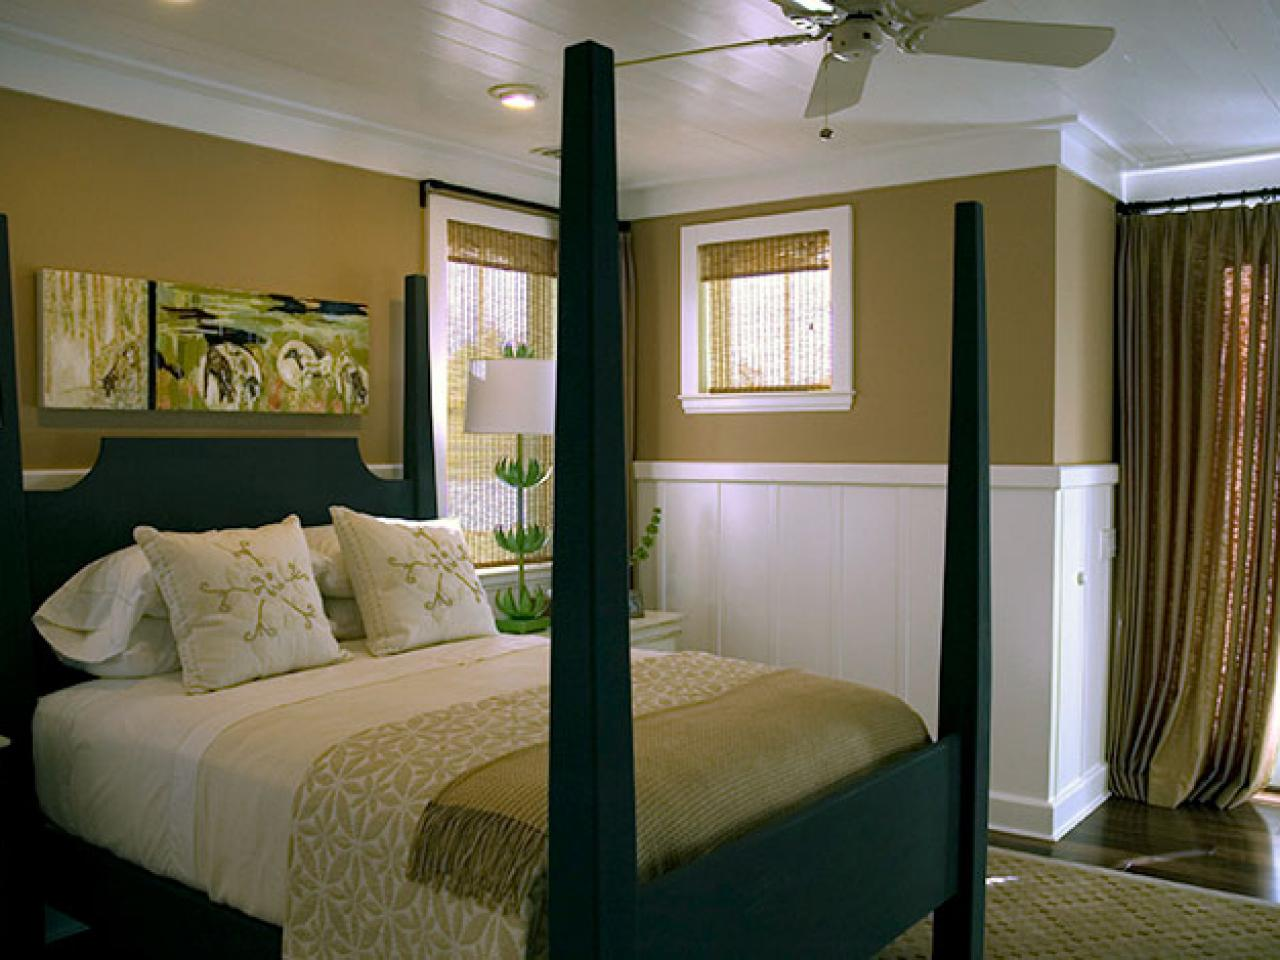 Bedroom ceiling design ideas pictures options tips hgtv for Bed rooms design